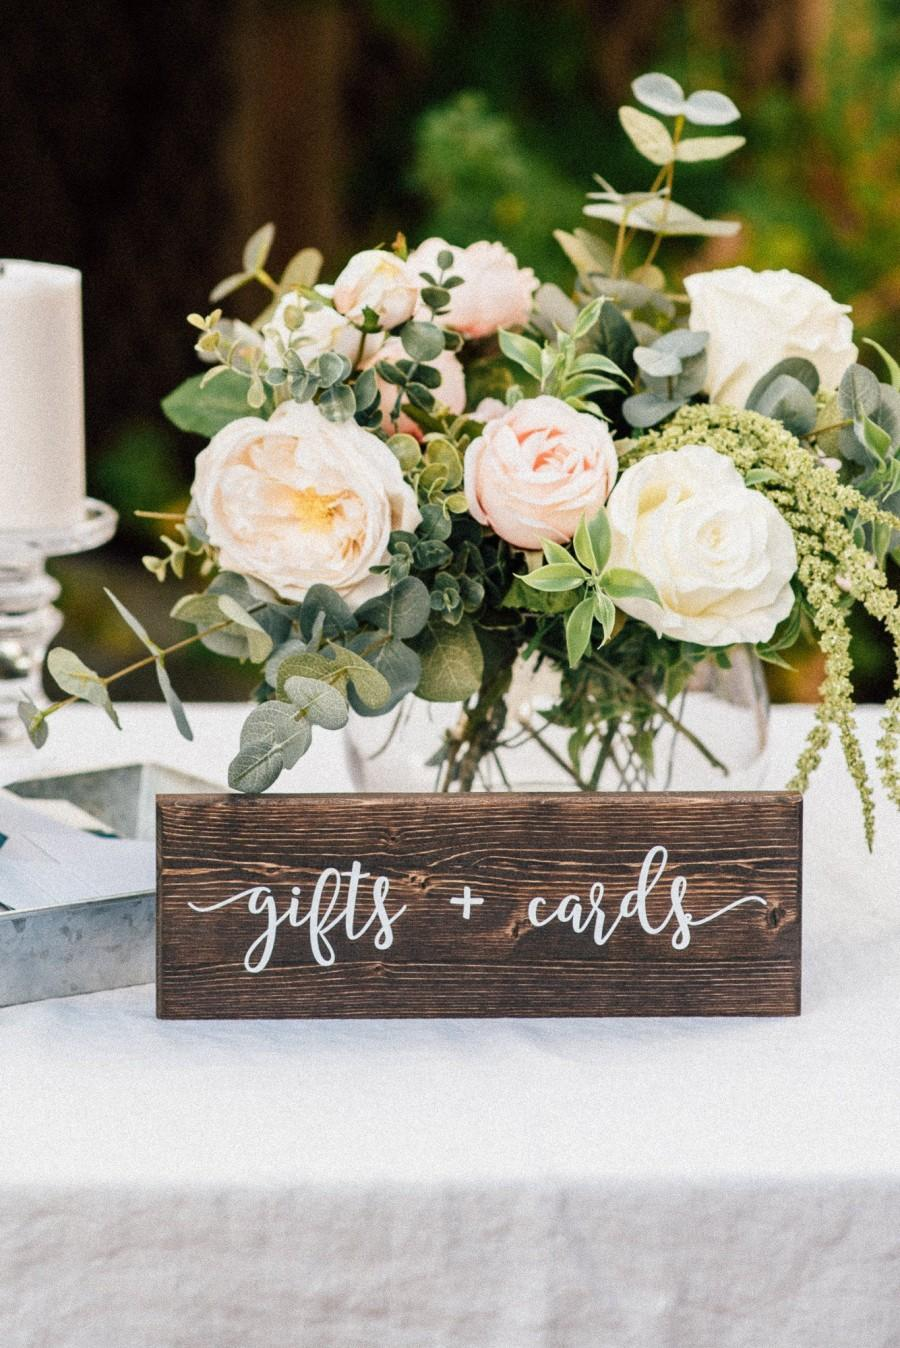 Wedding - Gifts and Cards Sign - Wedding Wooden Sign - Rustic Table Decor - Wedding Table Centerpiece